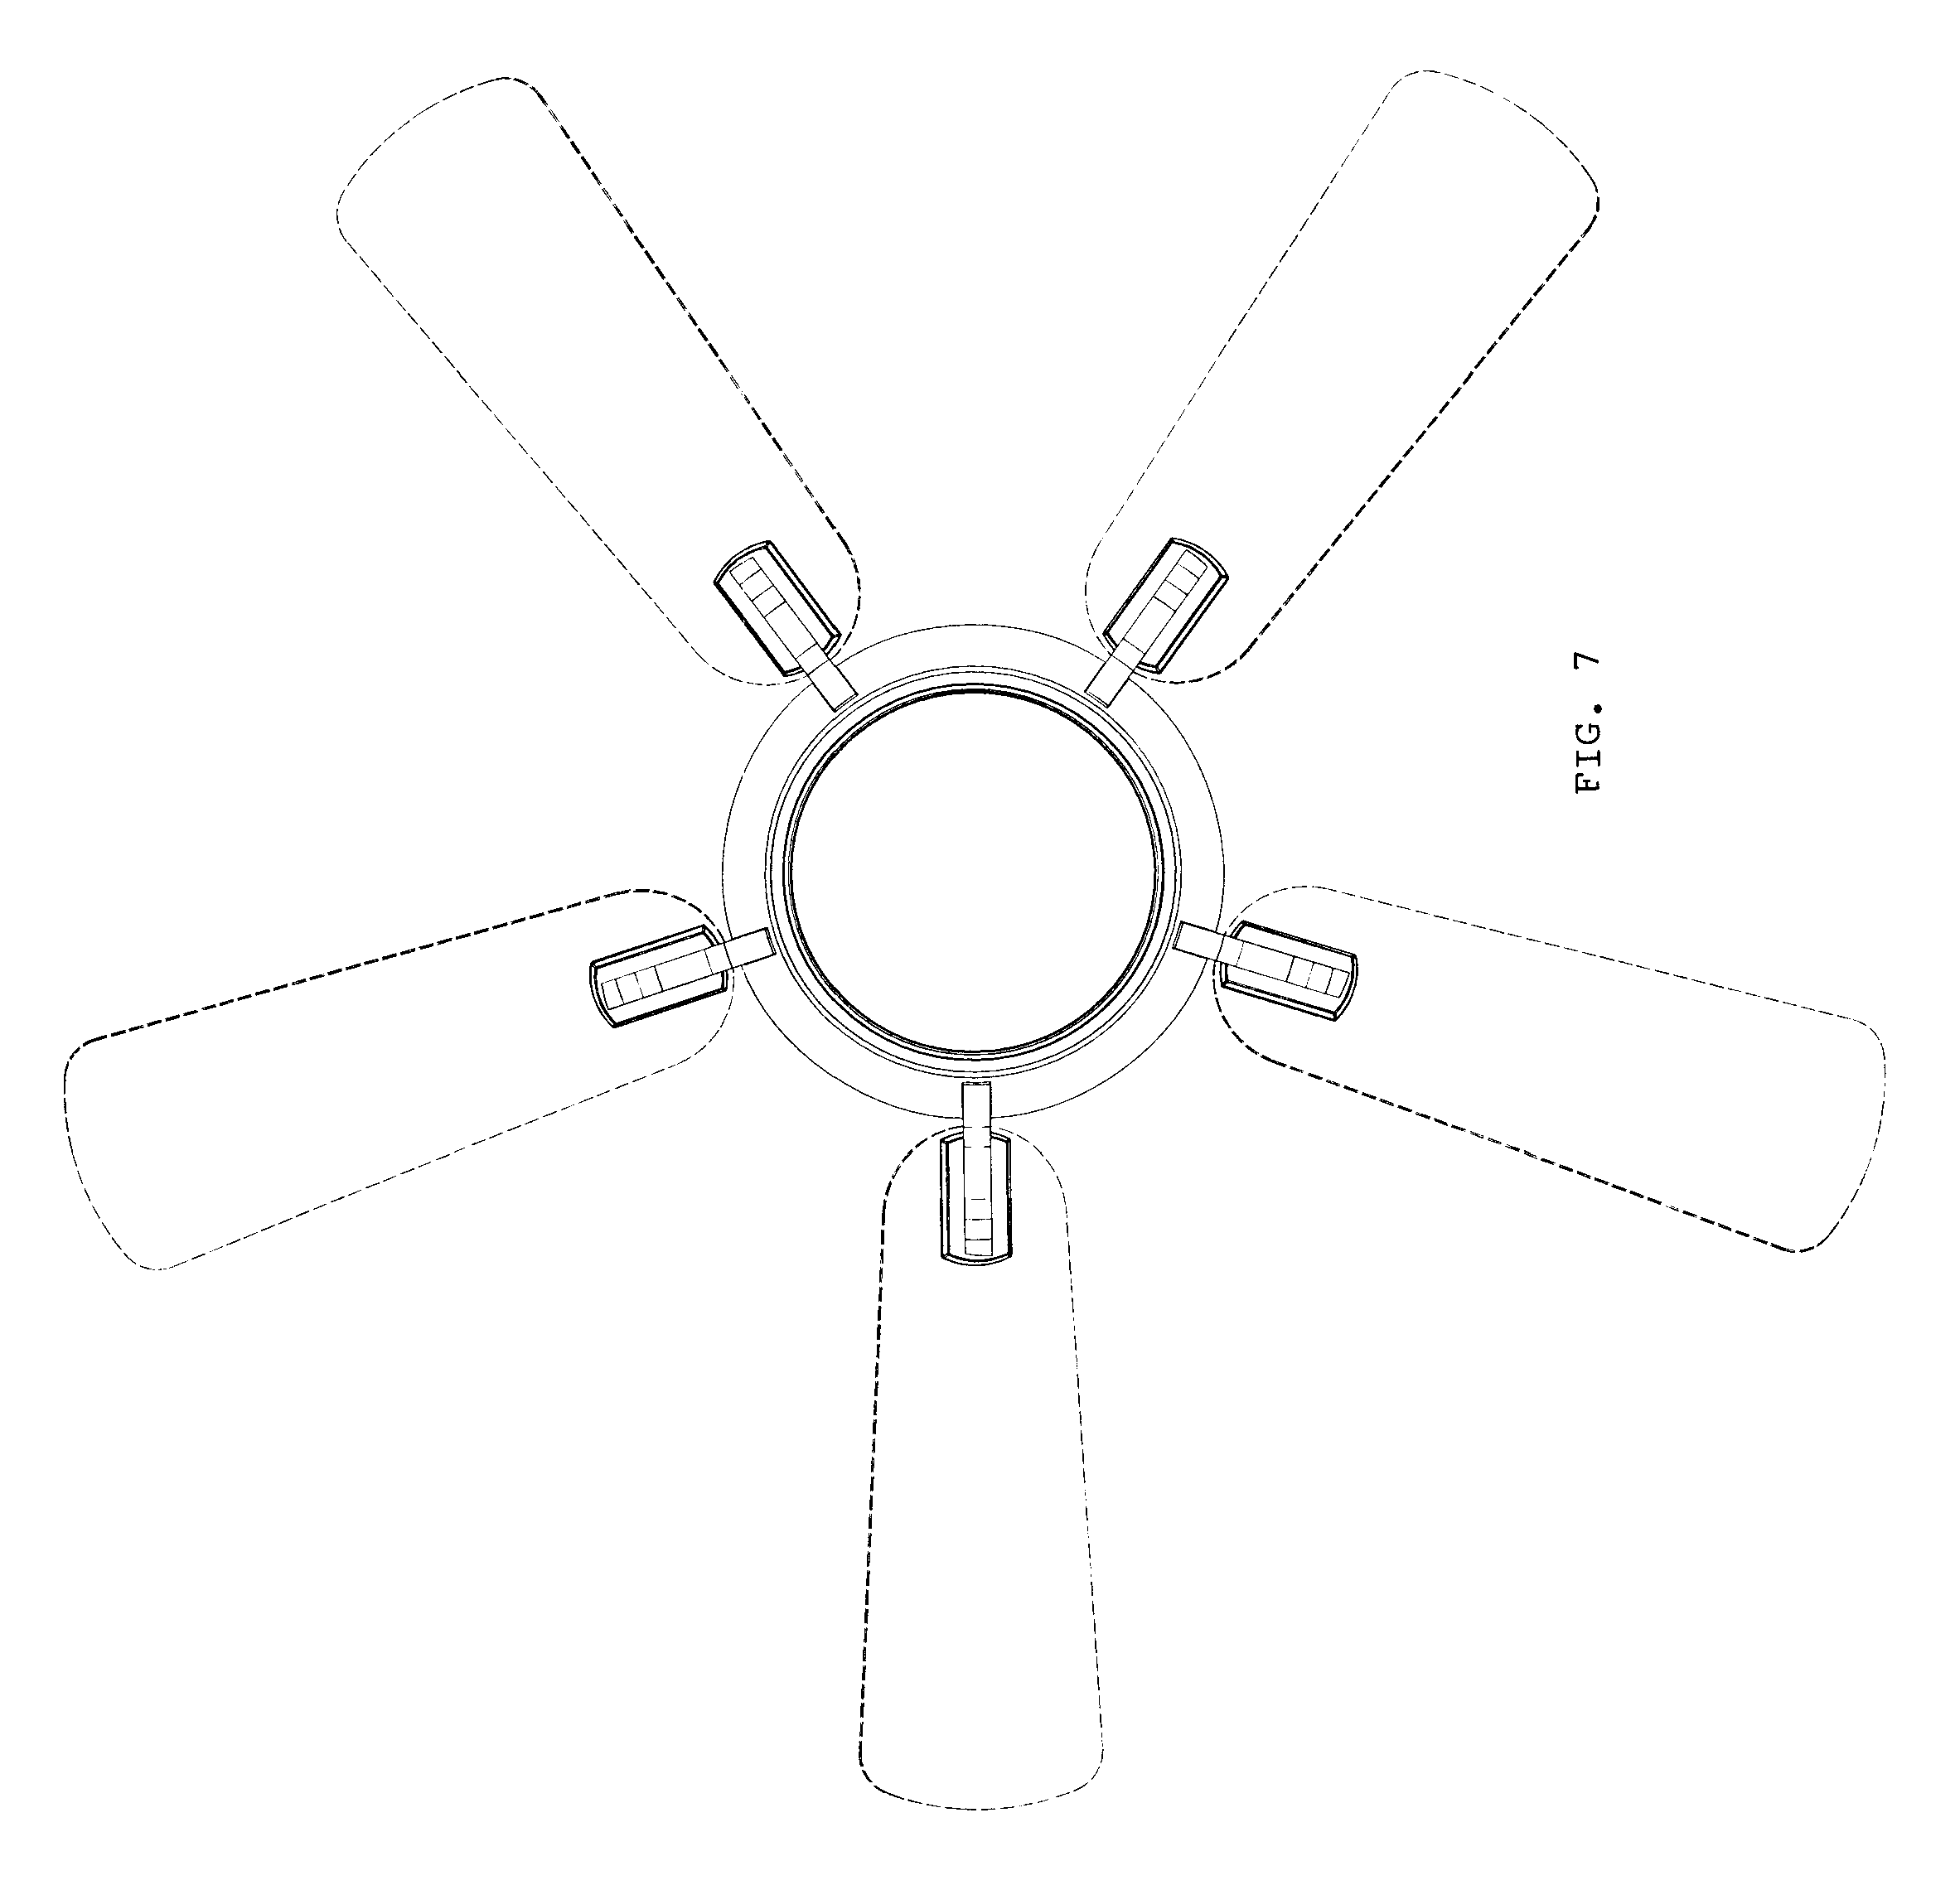 Patent usd607096 combined ceiling fan and light fixture google patents - Sme information about best cieling fan ...